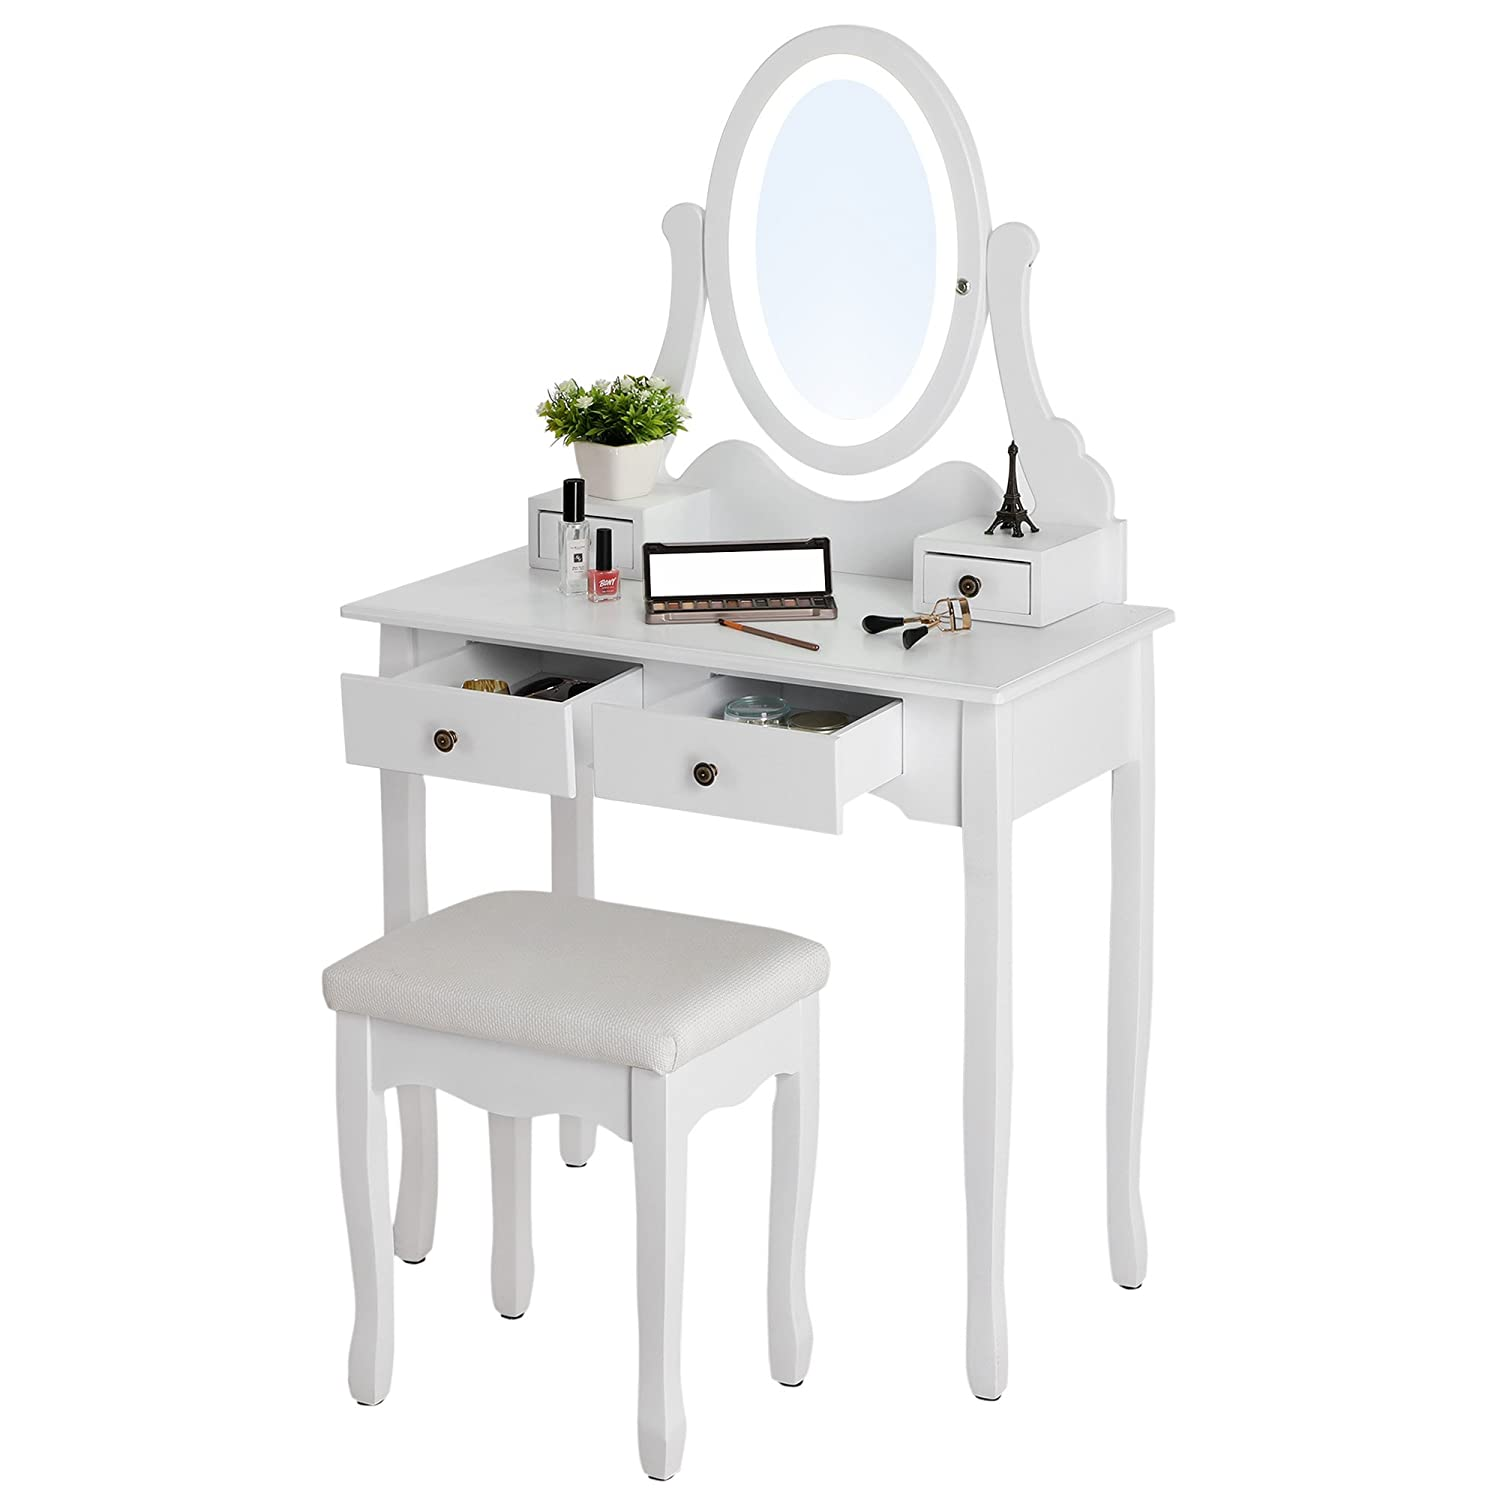 SONGMICS Vanity Table Set With Dimmable LED Lights And Mirror Makeup Dressing  Table With 4 Drawers